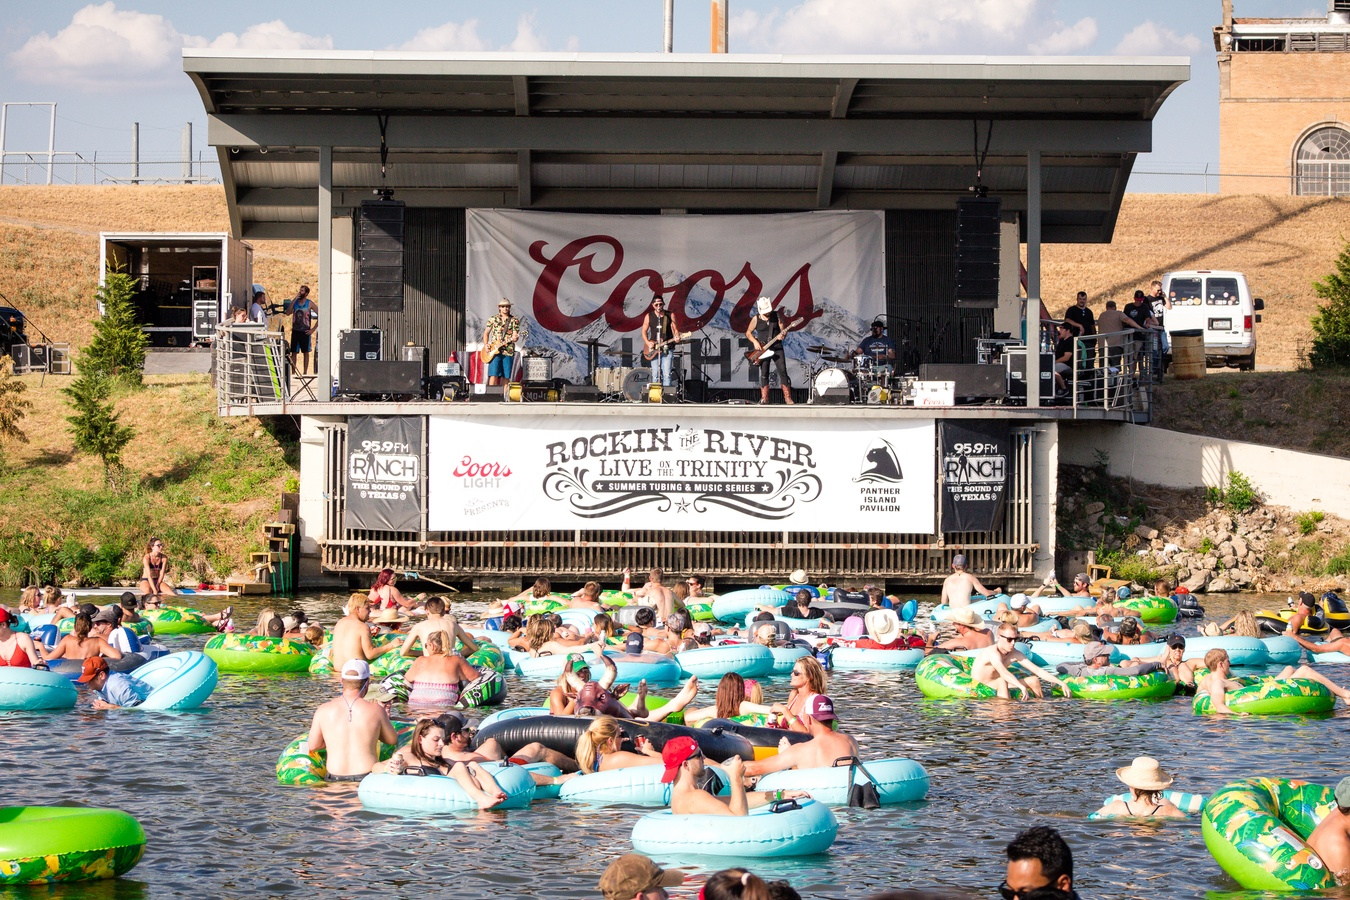 Rockin' the River Kicks off on July 6th in Fort Worth